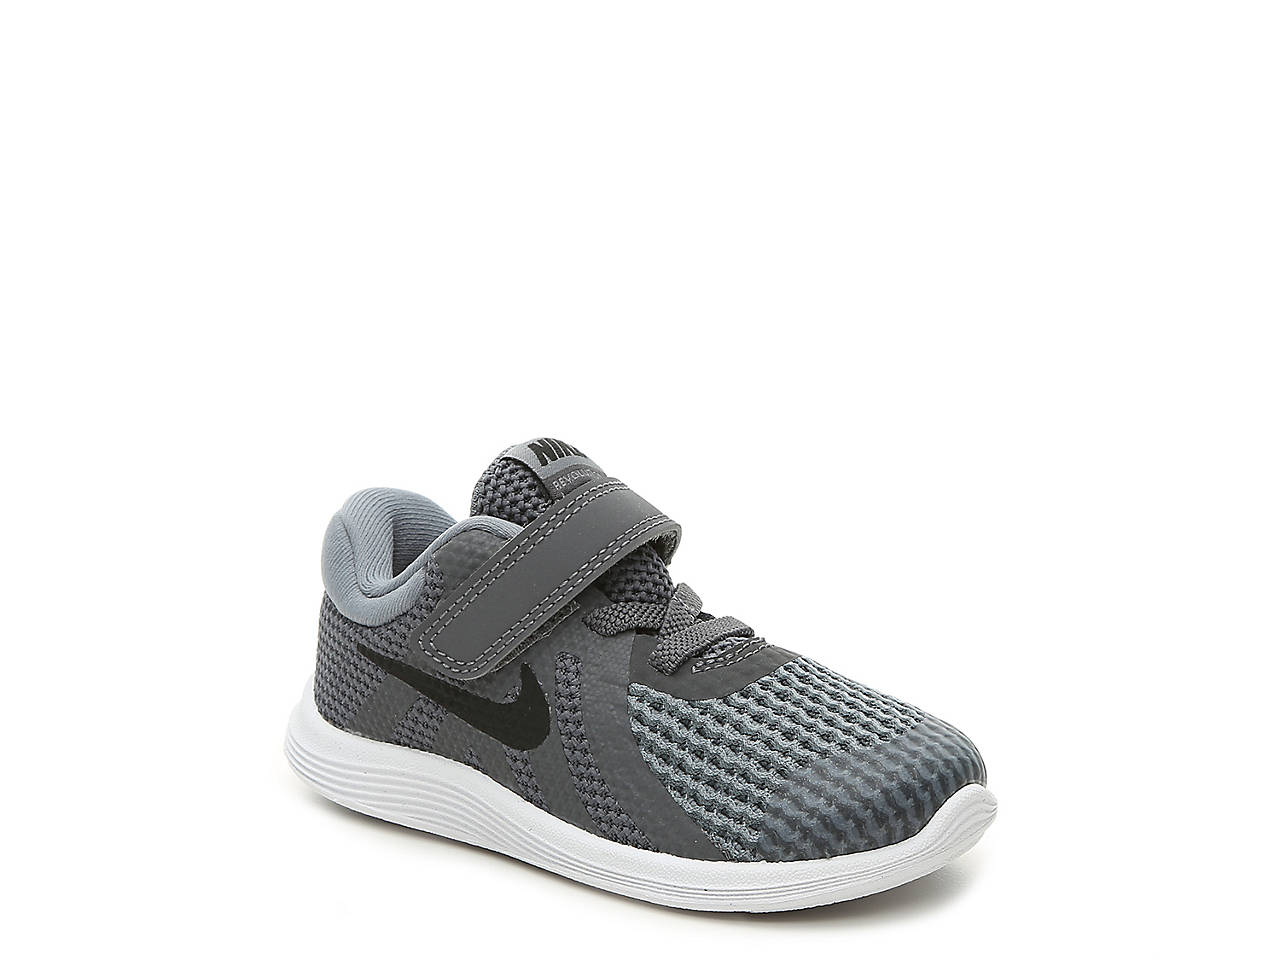 bf0dc73245e7e Nike Revolution 4 Toddler Running Shoe Kids Shoes